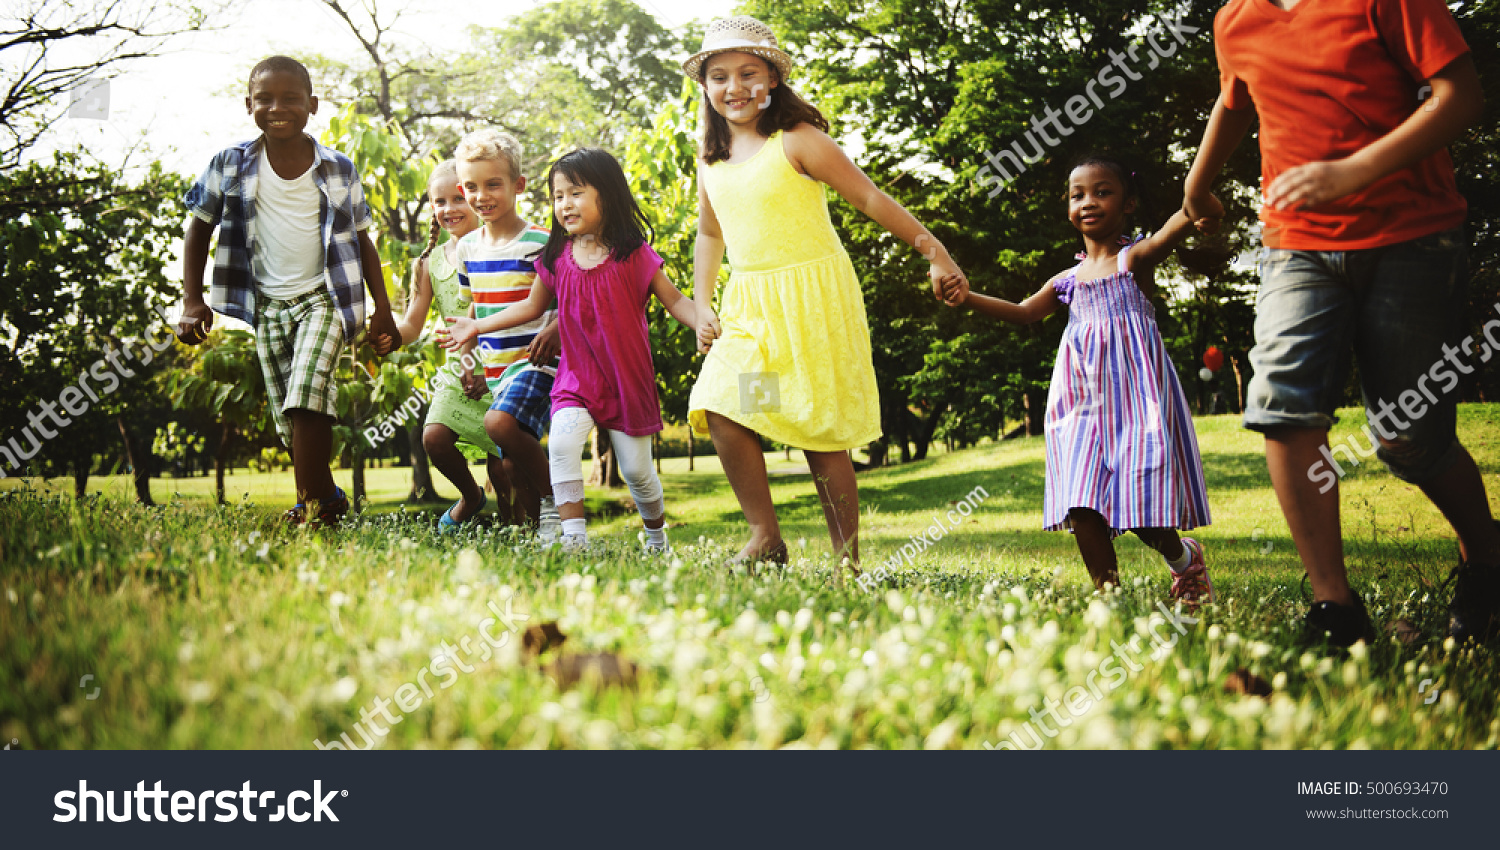 Child friends boys girls playful nature stock photo for Cheerful nature